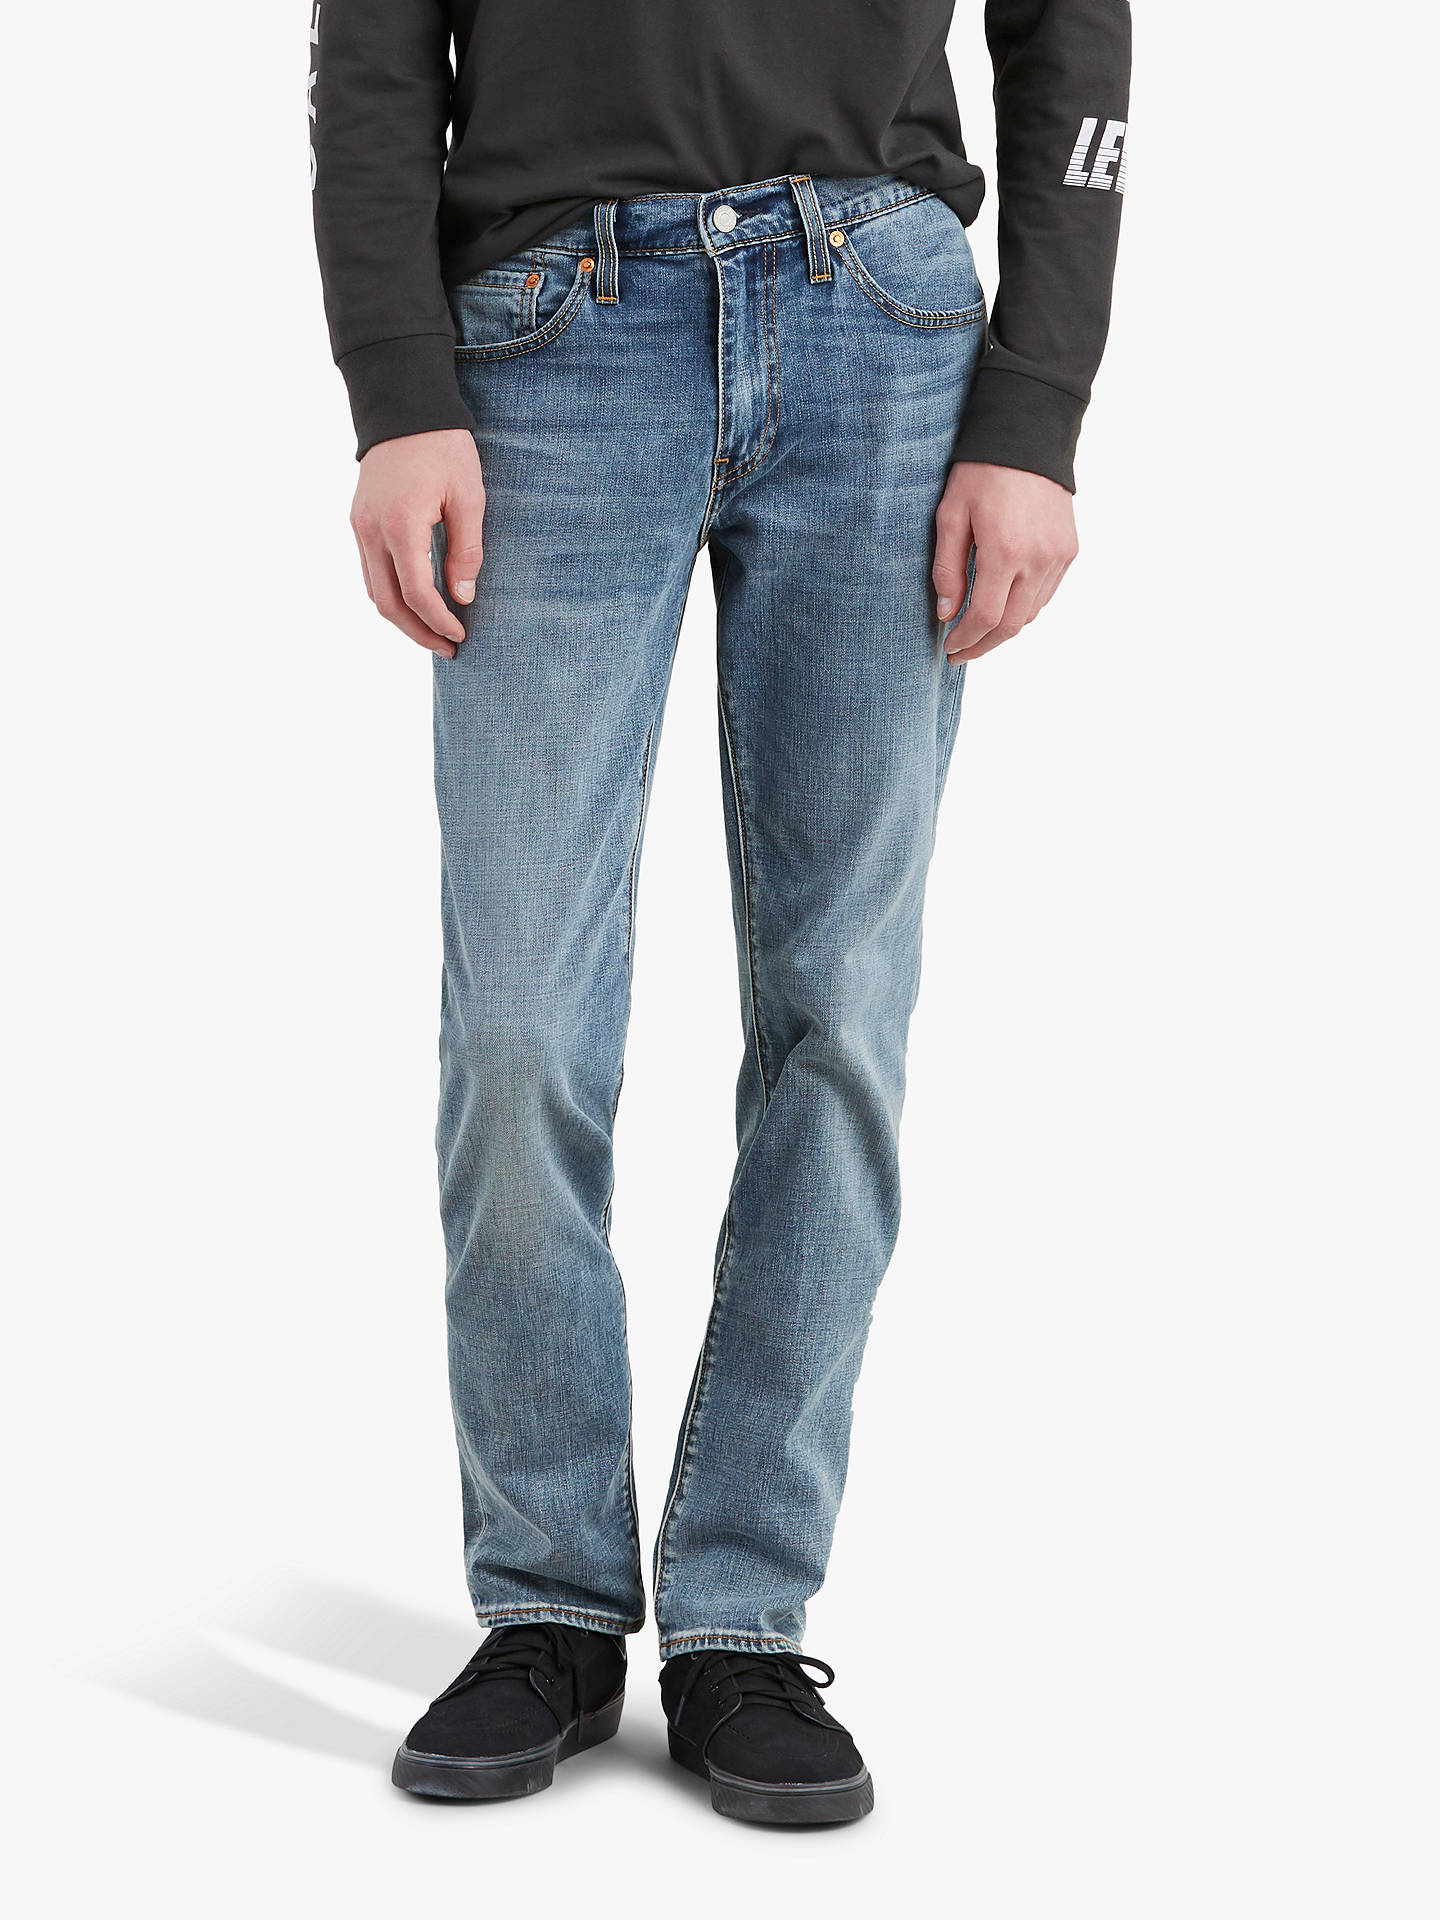 80580c3e2 Buy Levi's 511 Slim Fit Jeans, Baltic Adapt, 32R Online at johnlewis. ...